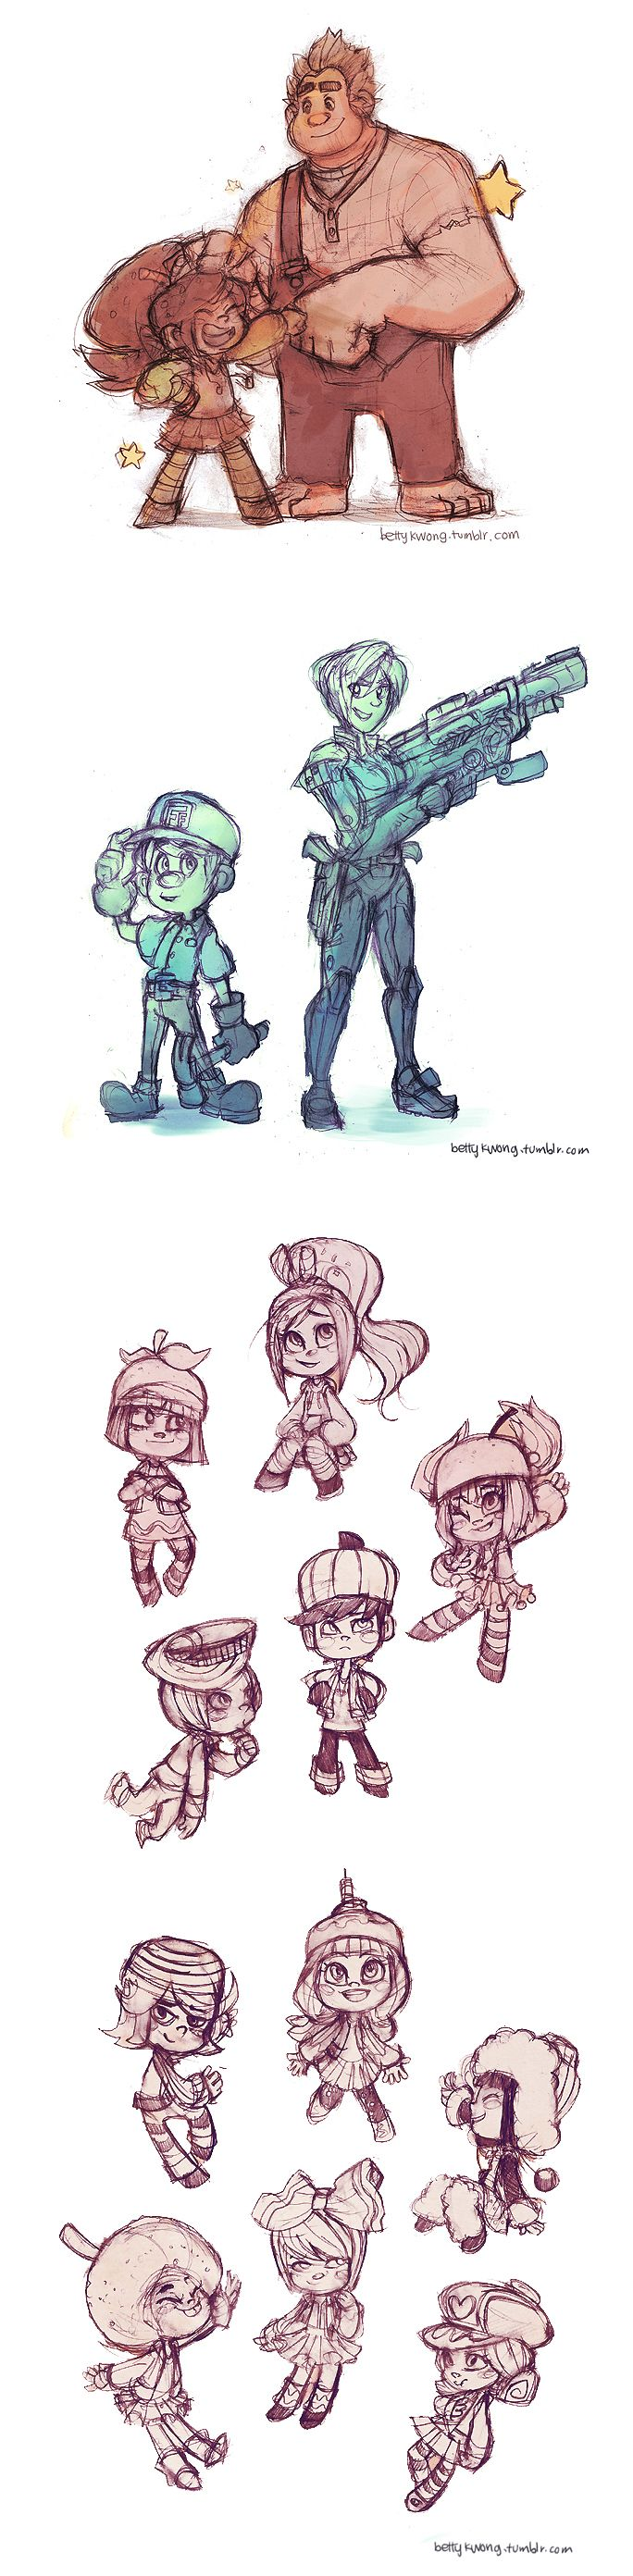 Wreck-It Ralph. I love this a lot. And hey-Vanellope with long hair is not a bad idea!